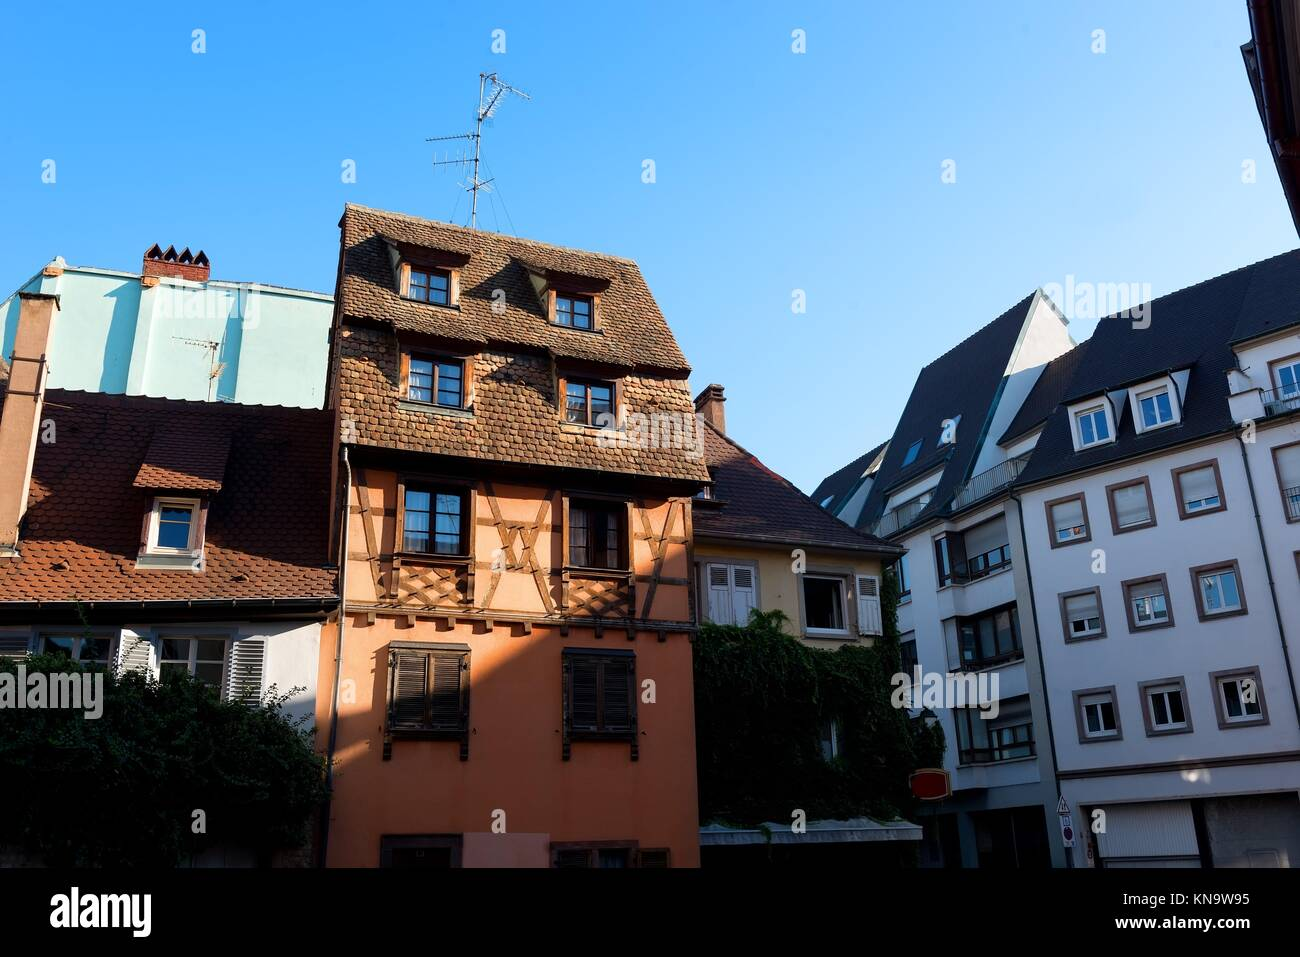 Neat Houses of Strasbourg and blue sky, France. - Stock Image